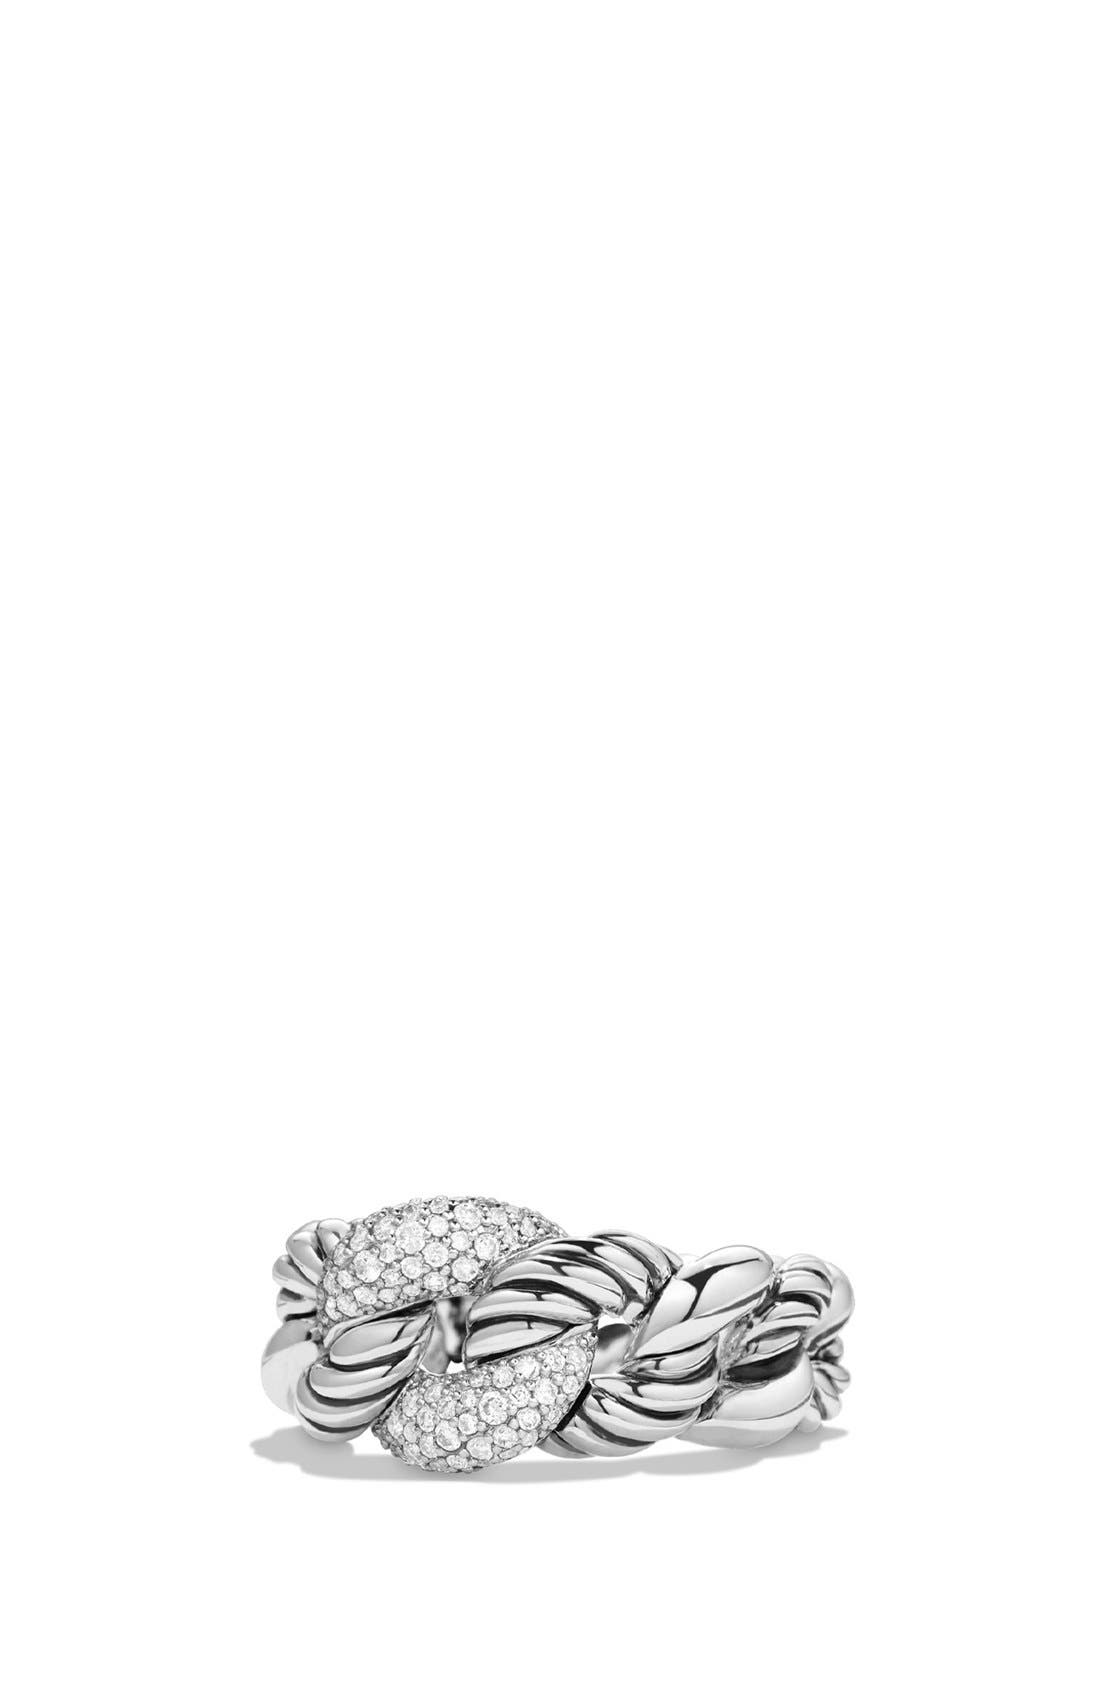 'Belmont' Curb Link Ring with Diamonds,                             Main thumbnail 1, color,                             DIAMOND